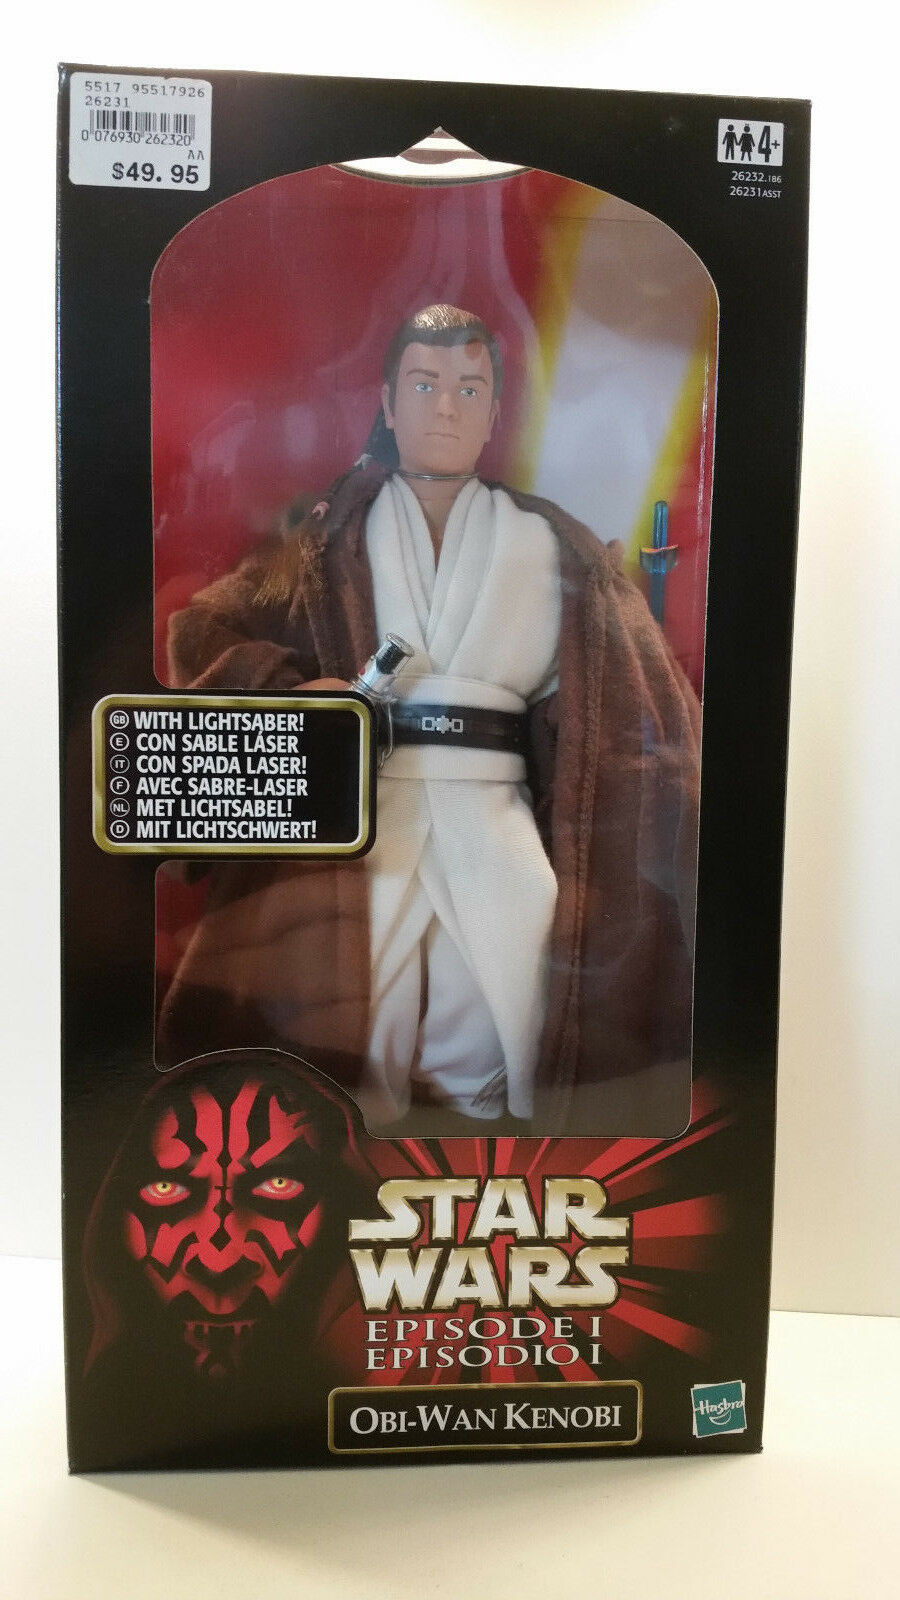 Star Wars Episode 1 TPM Obi-Wan Kenobi with lightsaber 1 6 figure MIB 1999